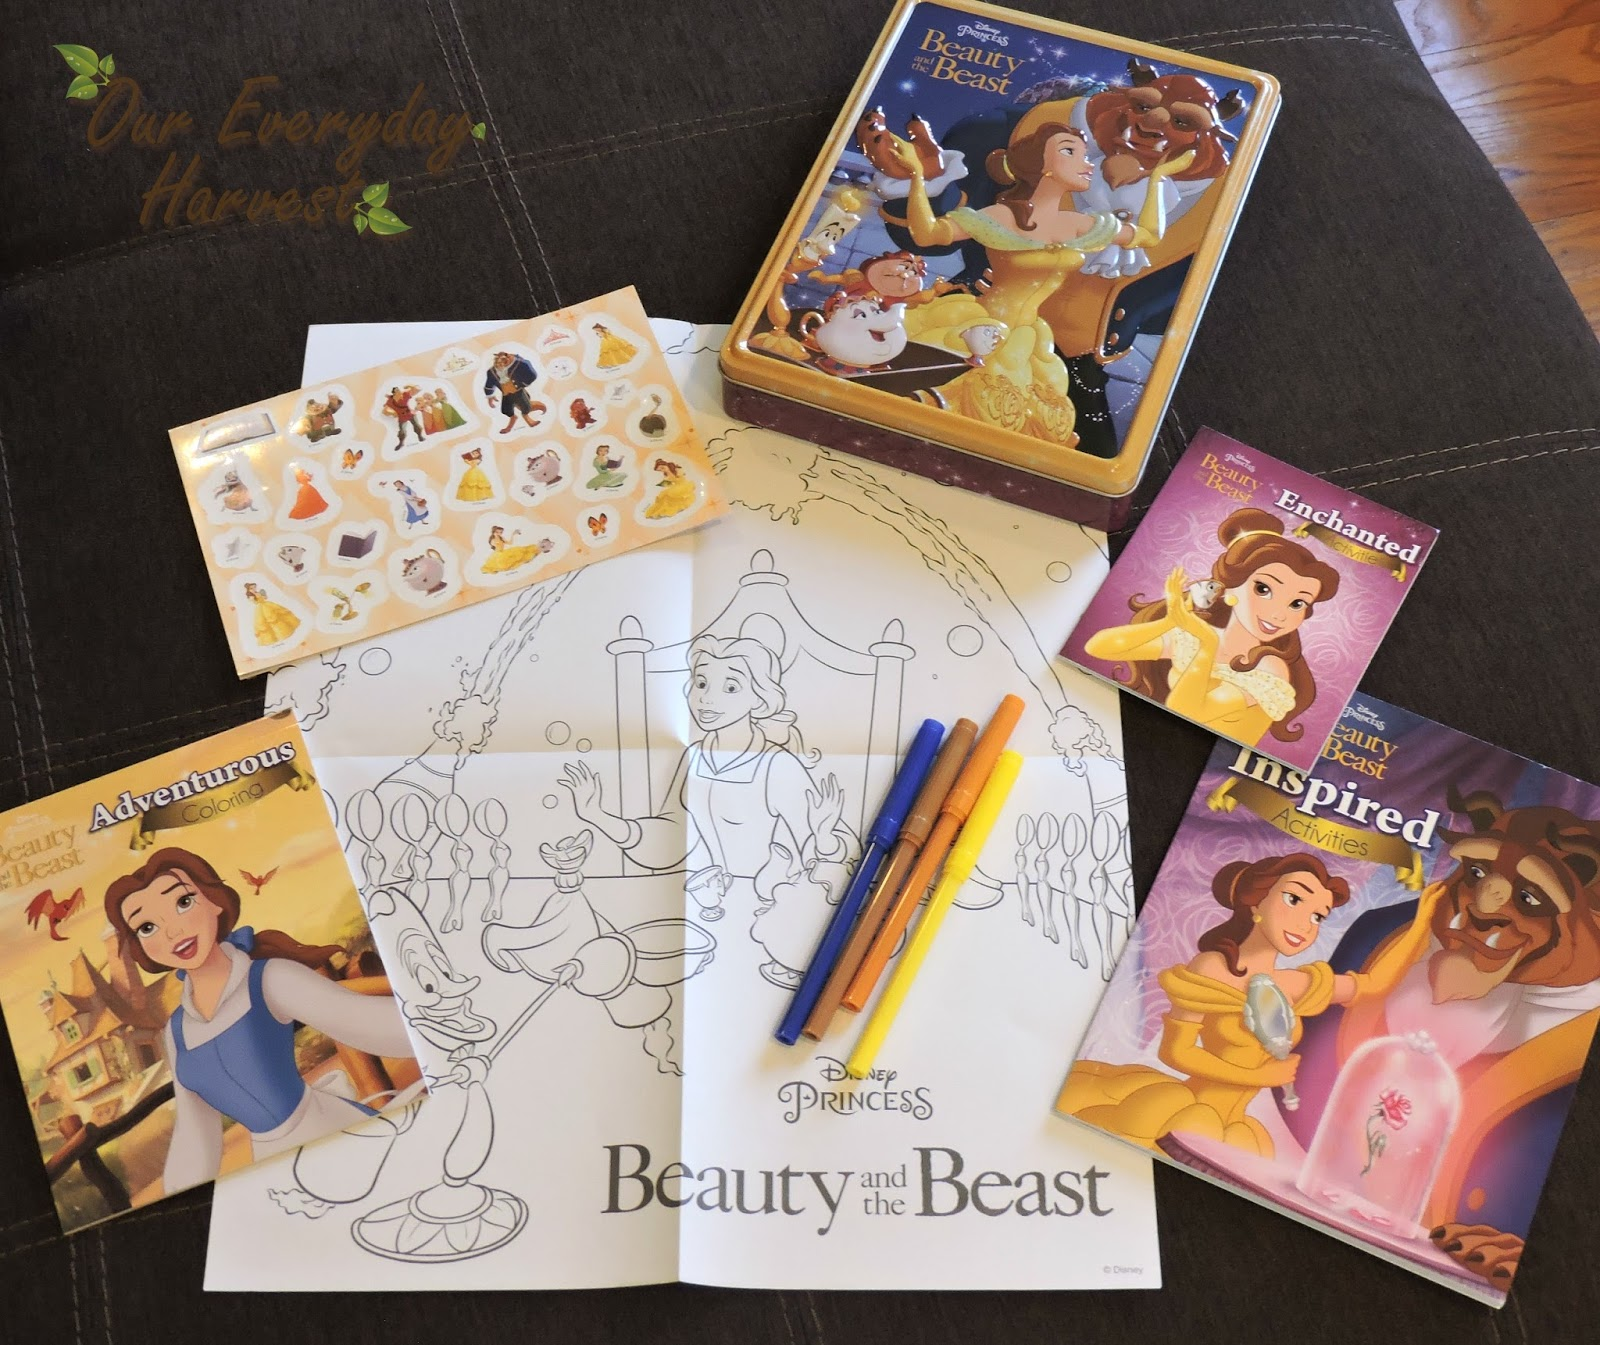 to celebrate the new live action film parragon books has released a collection of beauty and the beast themed activity books and kits this disney princess - Disney Princess Art And Activity Collection